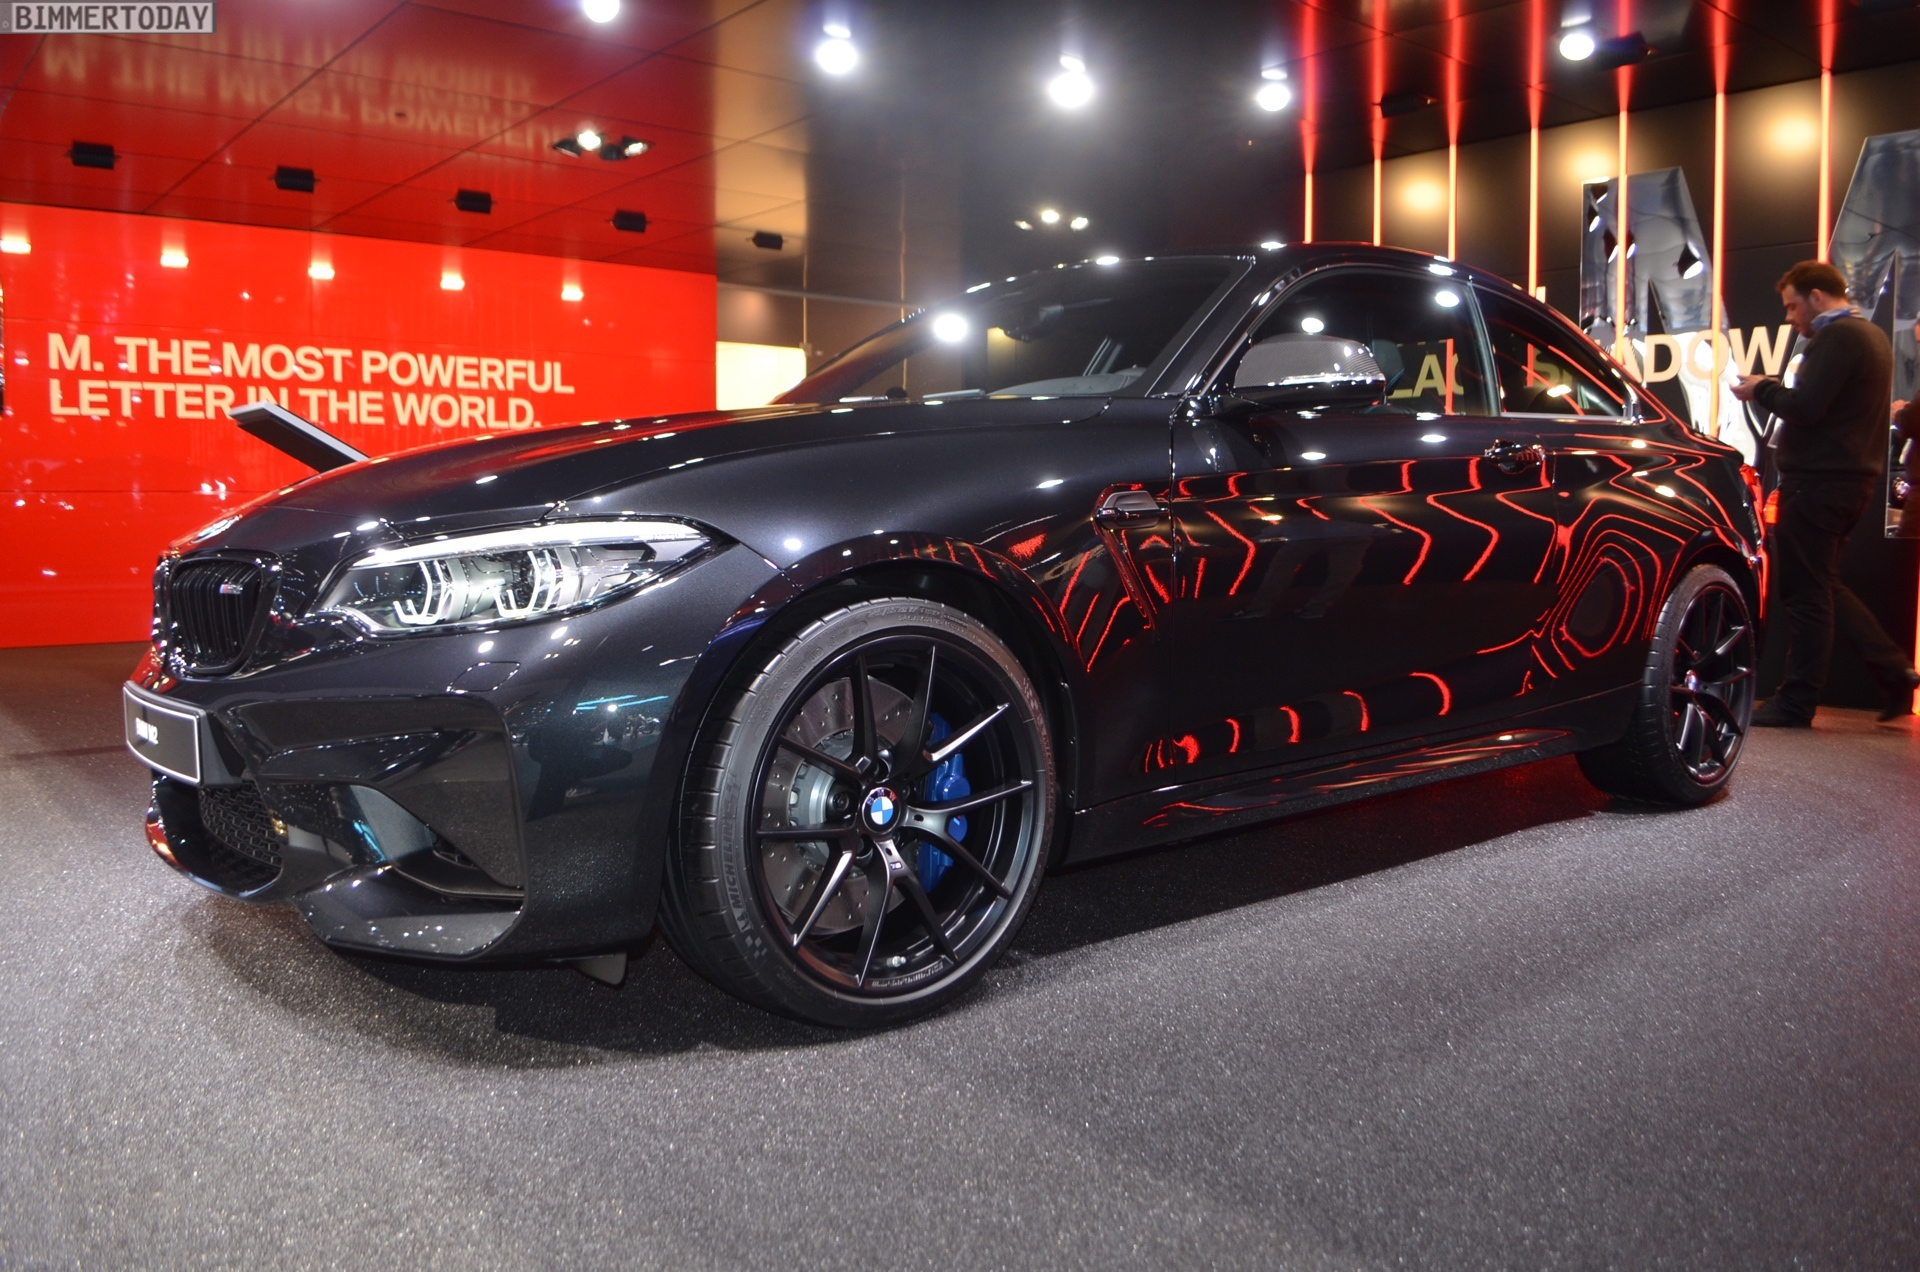 Genf 2018 Live Fotos Zeigen Bmw M2 Edition Black Shadow